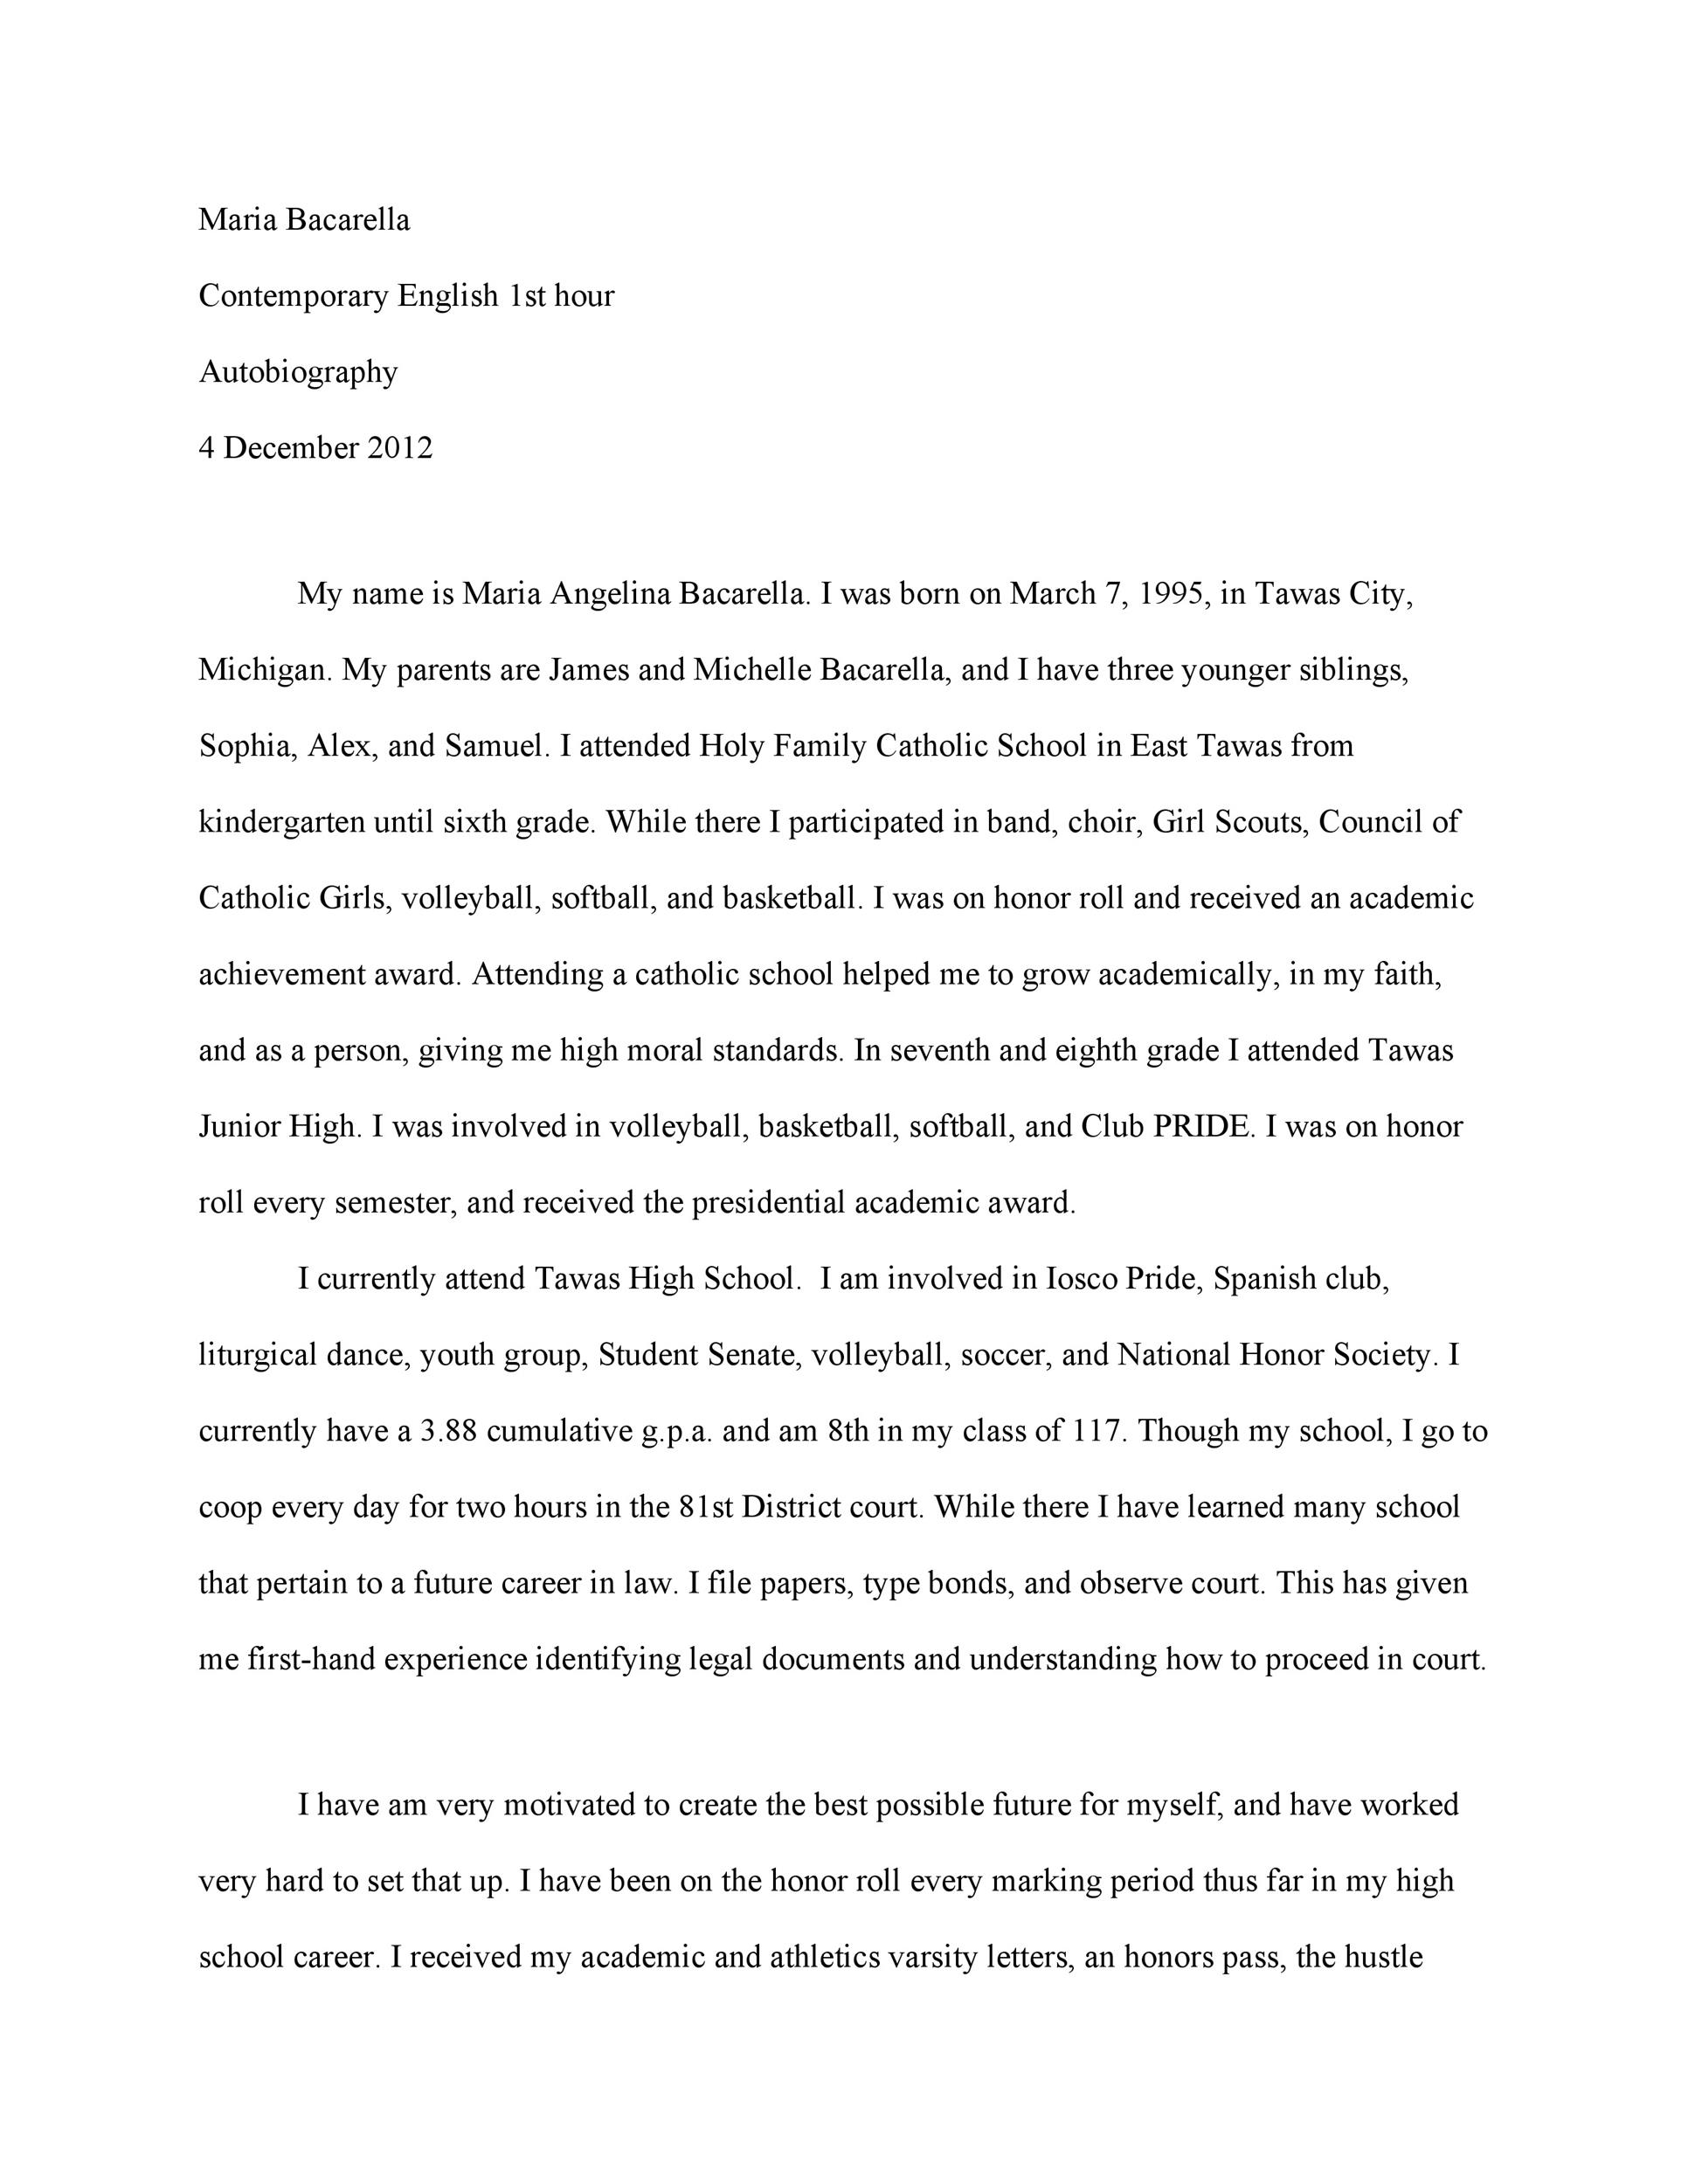 Full Size of Autobiography Example Essay Ixujezyso Template Helper Society Analytical Writing Analysis